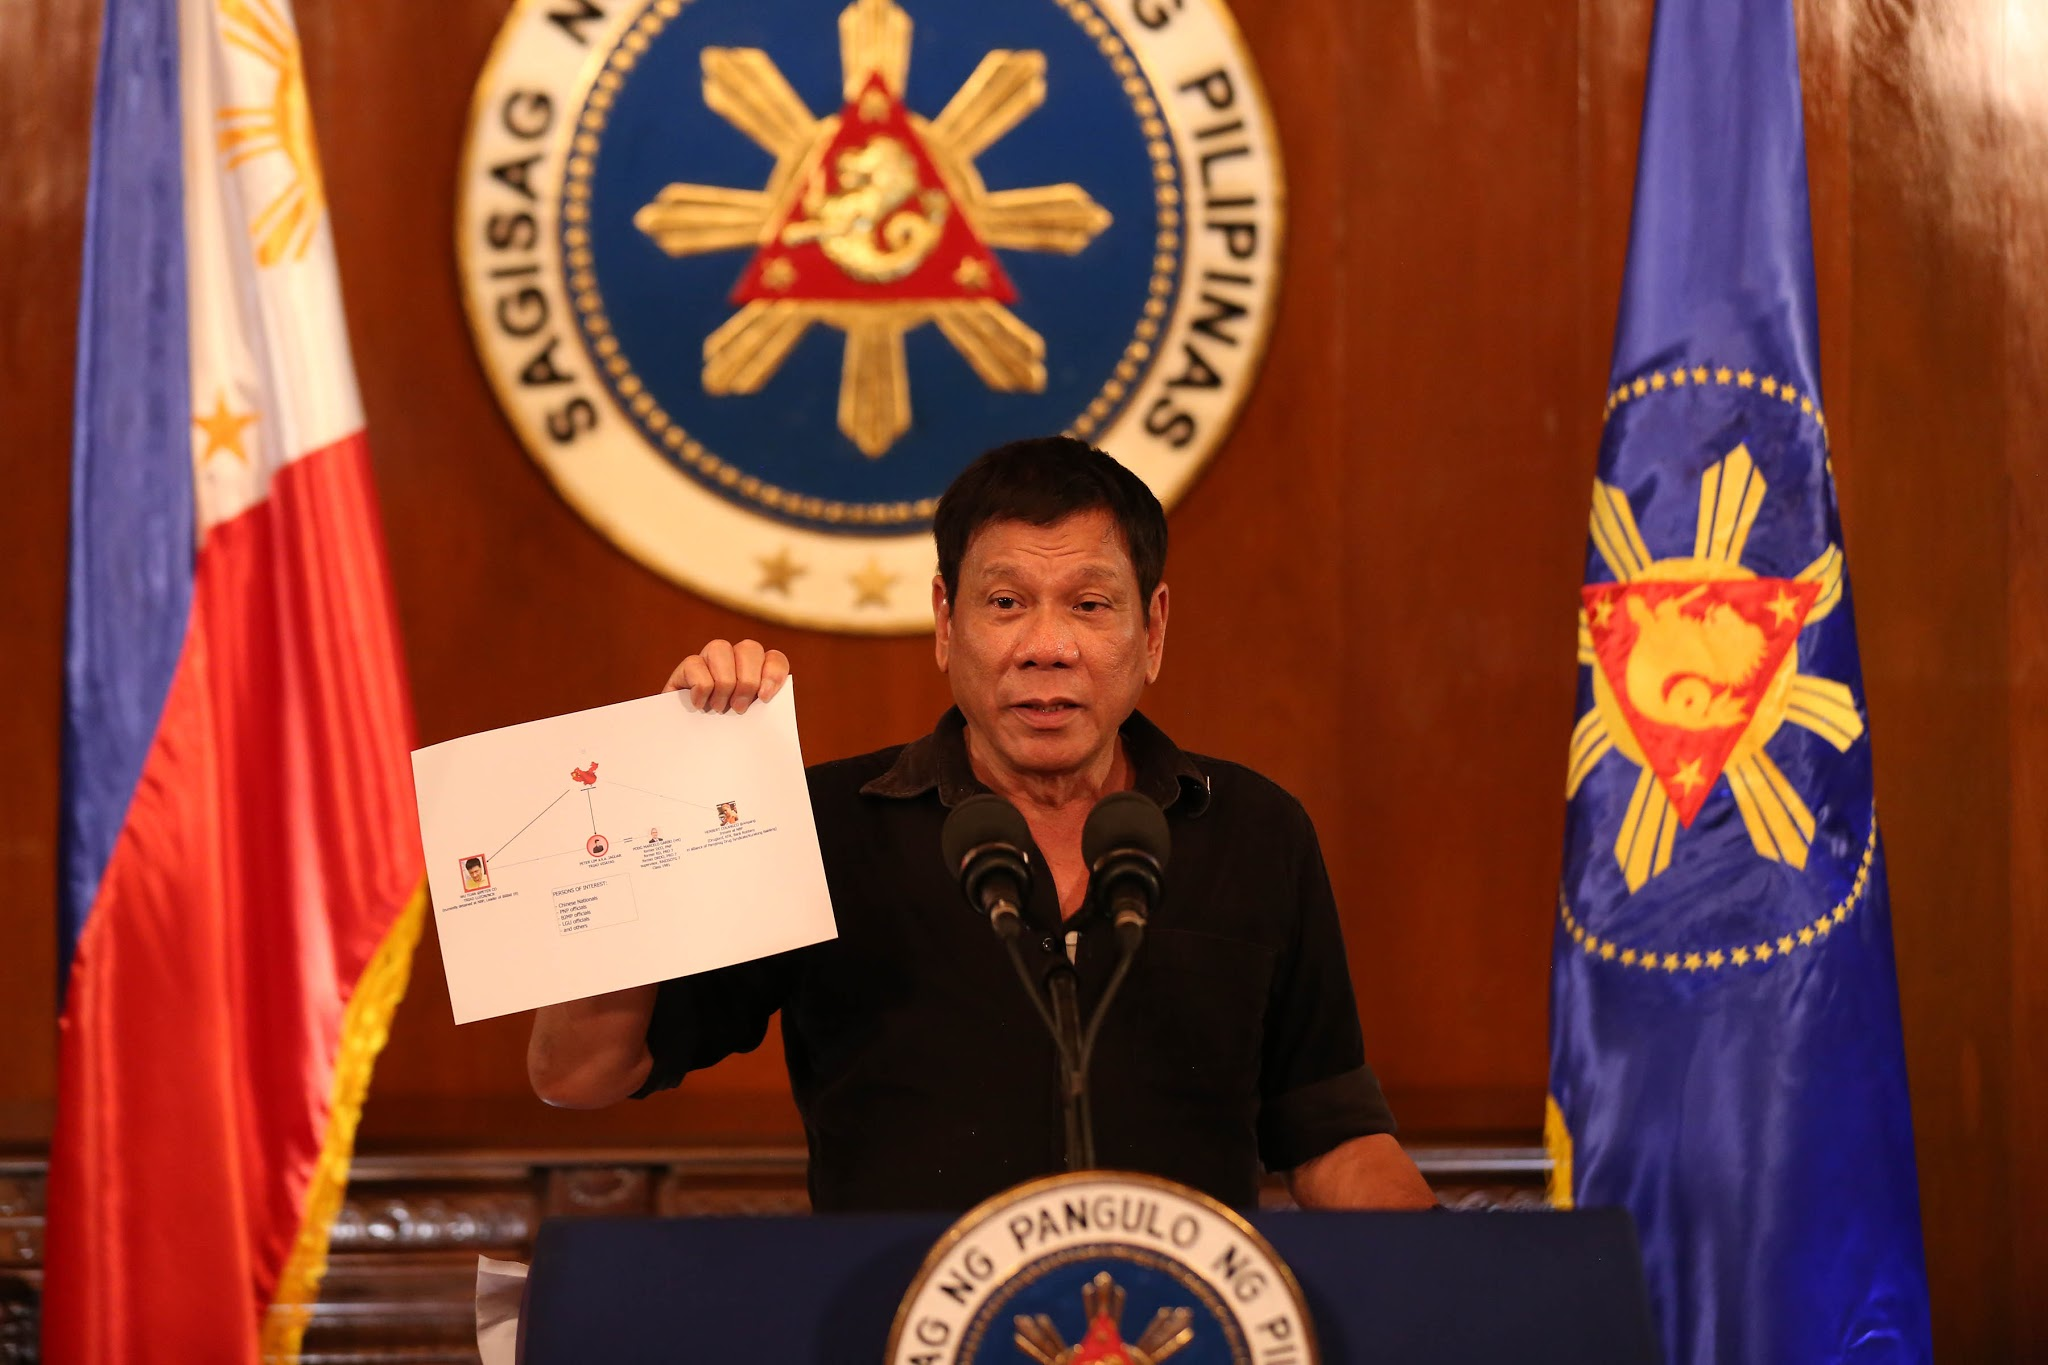 FILE PHOTO: President Rodrigo R. Duterte shows a copy of a diagram showing the connection of high level drug syndicates operating in the country during a press conference at Malacañang on July 7, 2016. (Photo by KING RODRIGUEZ/Presidential Photographers Division)